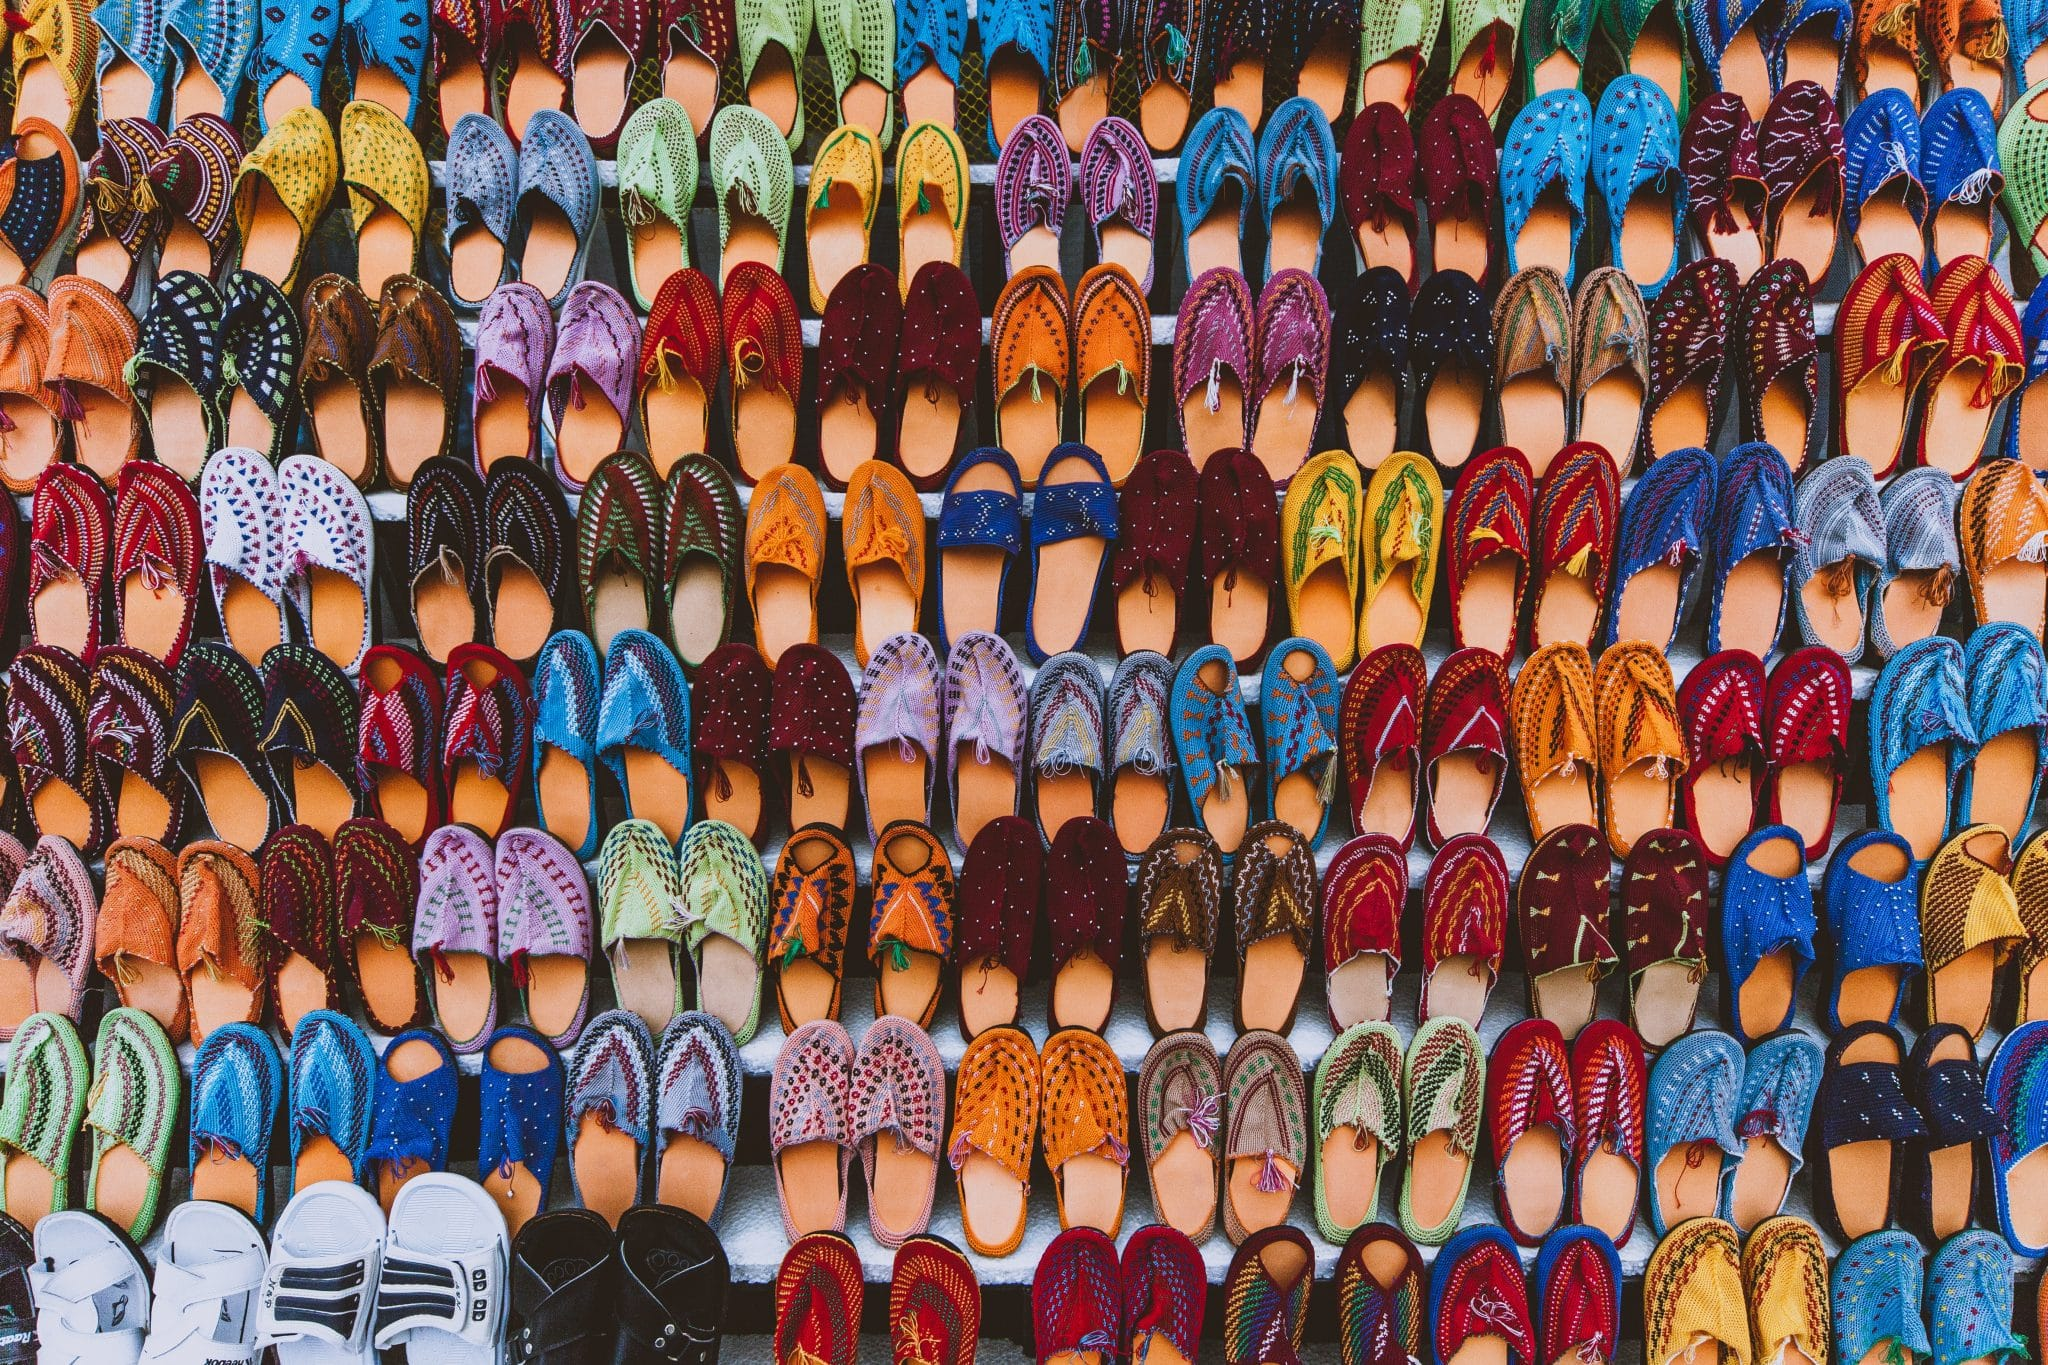 Colorful shoes lined up in a nice pattern